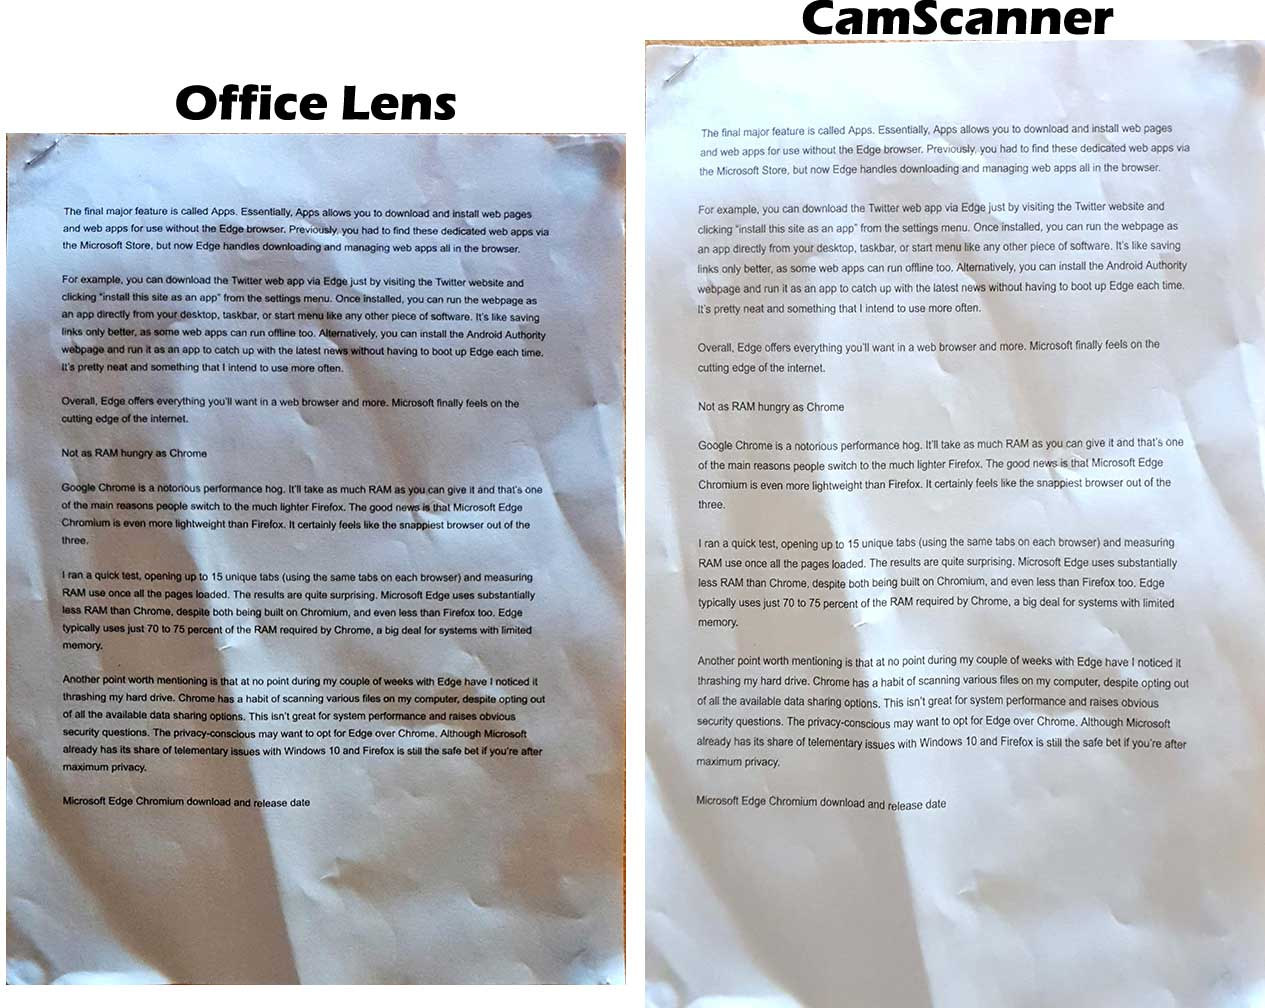 Document Quality of Office Lens and CamScanner